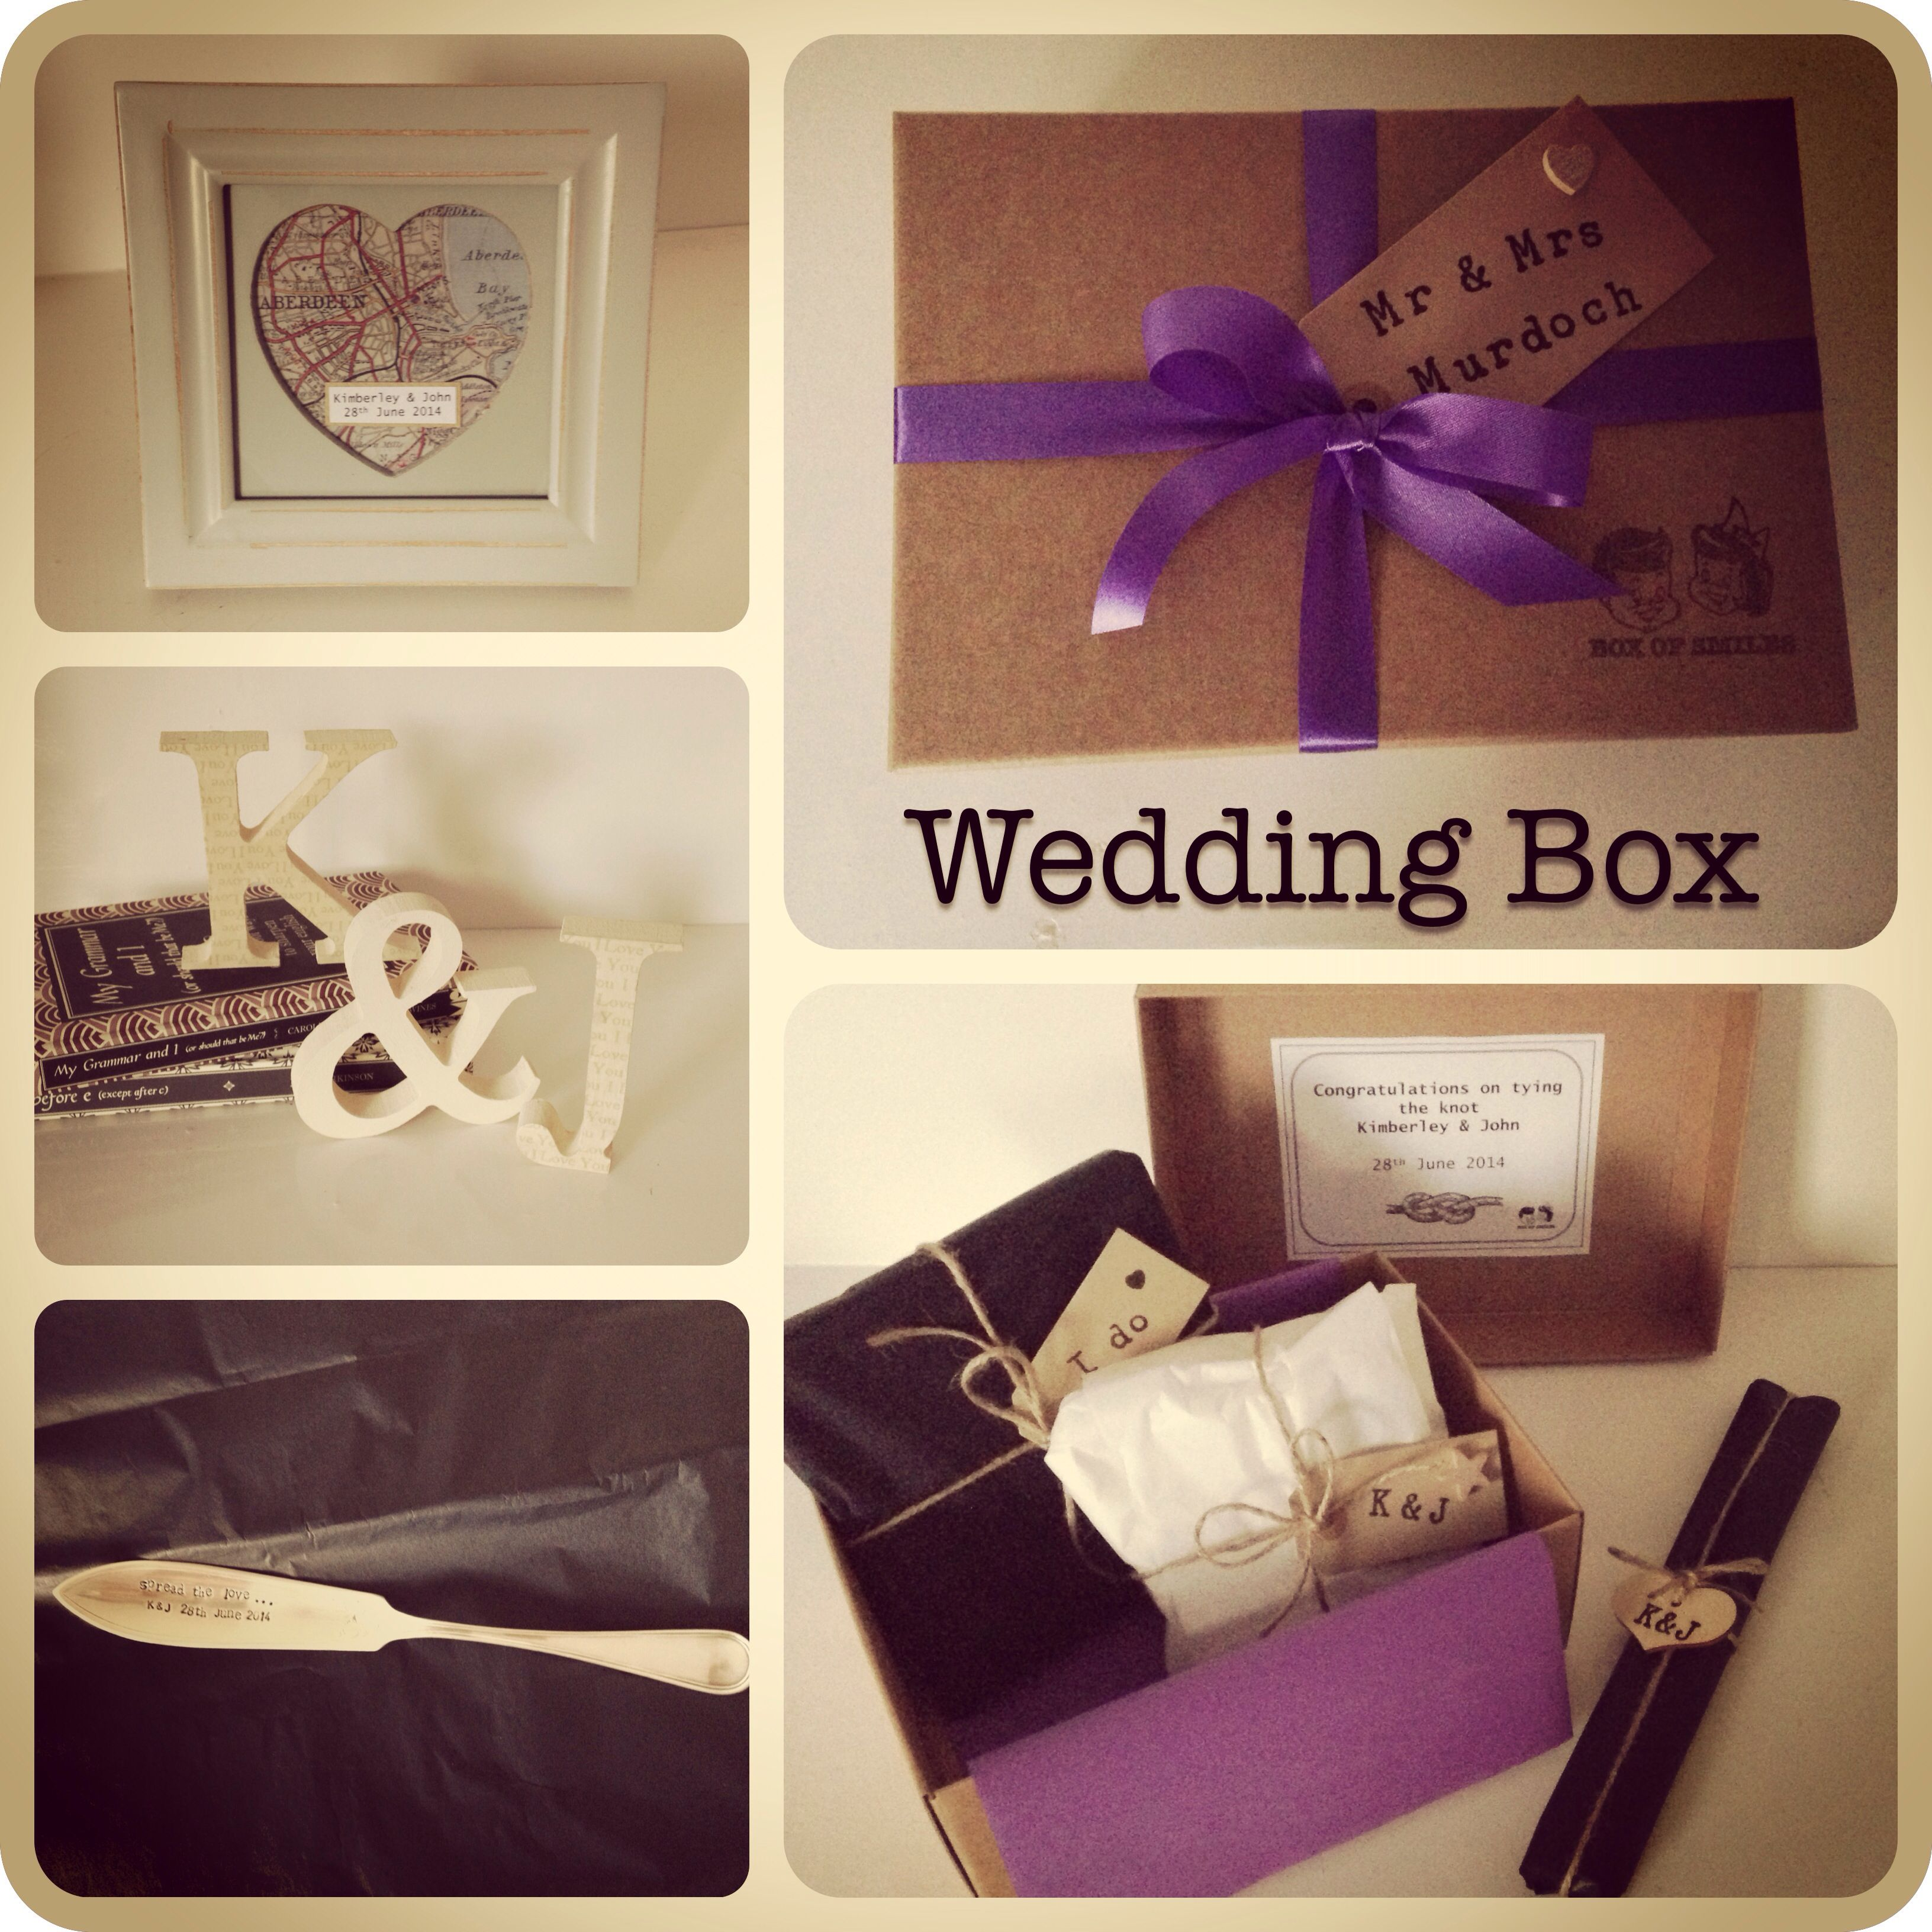 Wedding gift idea from www.box-of-smiles.co.uk www.facebook.com/boxofsmiles79